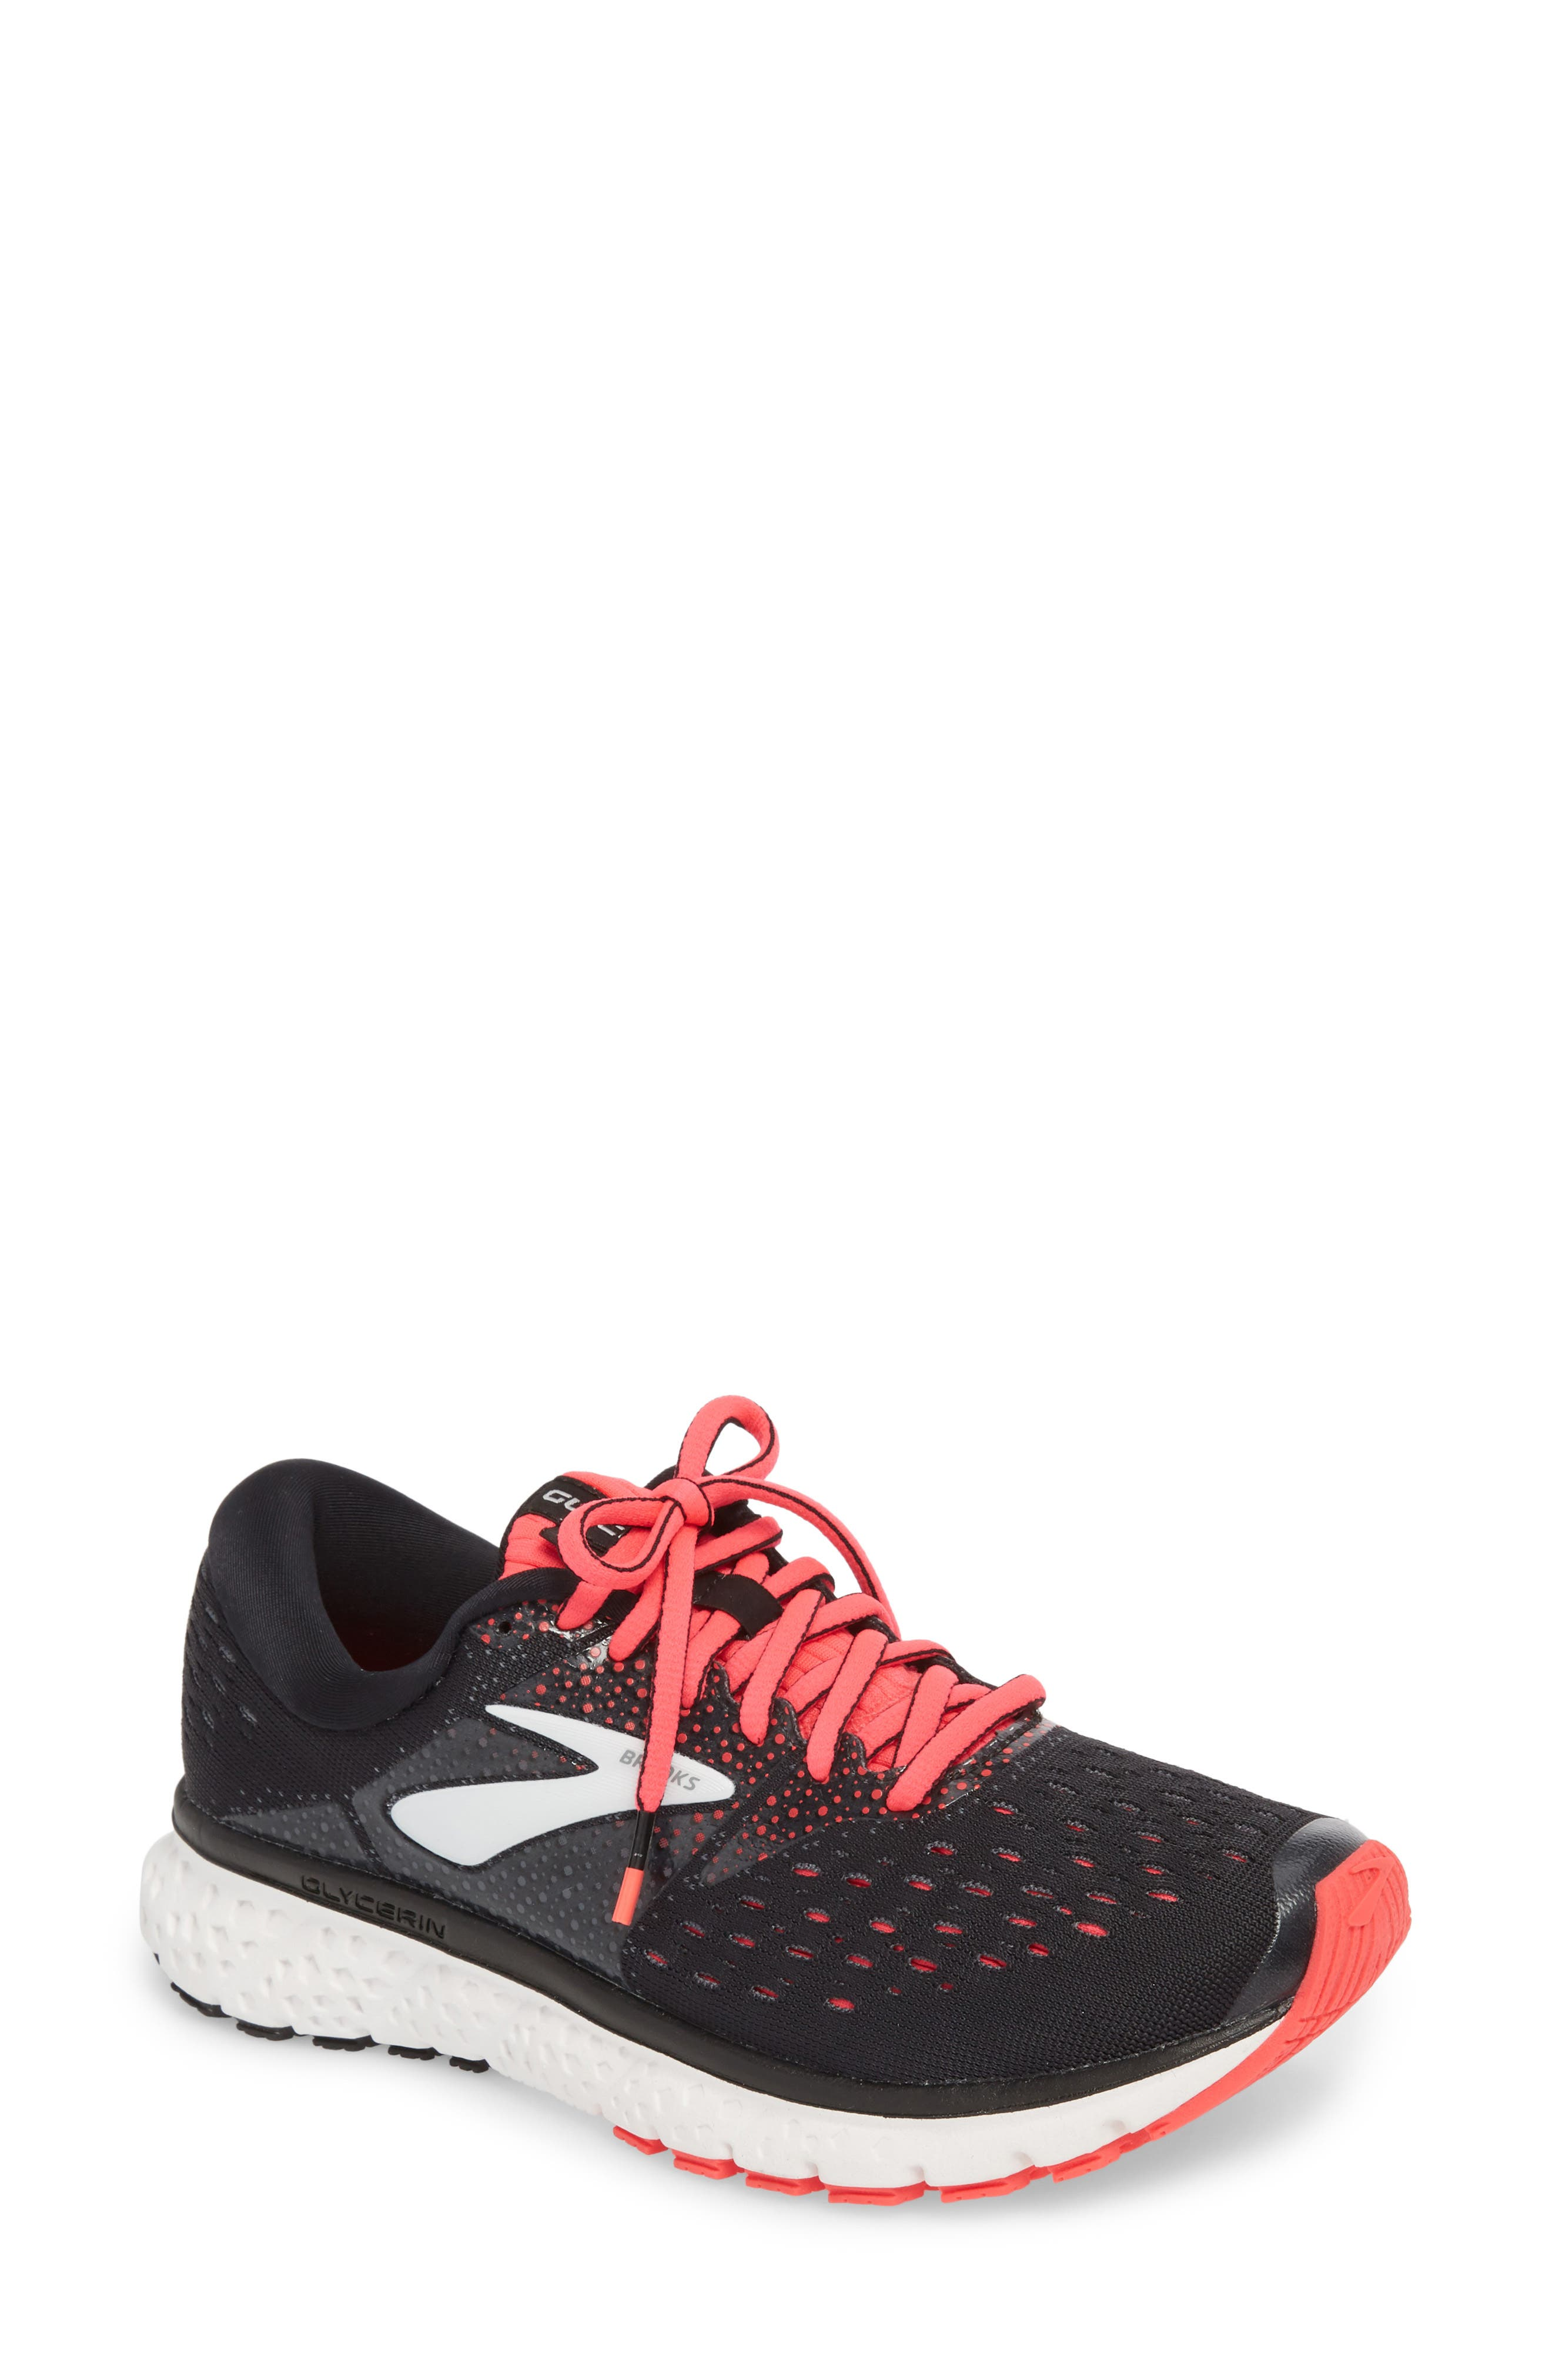 BROOKS, Glycerin 16 Running Shoe, Main thumbnail 1, color, BLACK/ PINK/ GREY